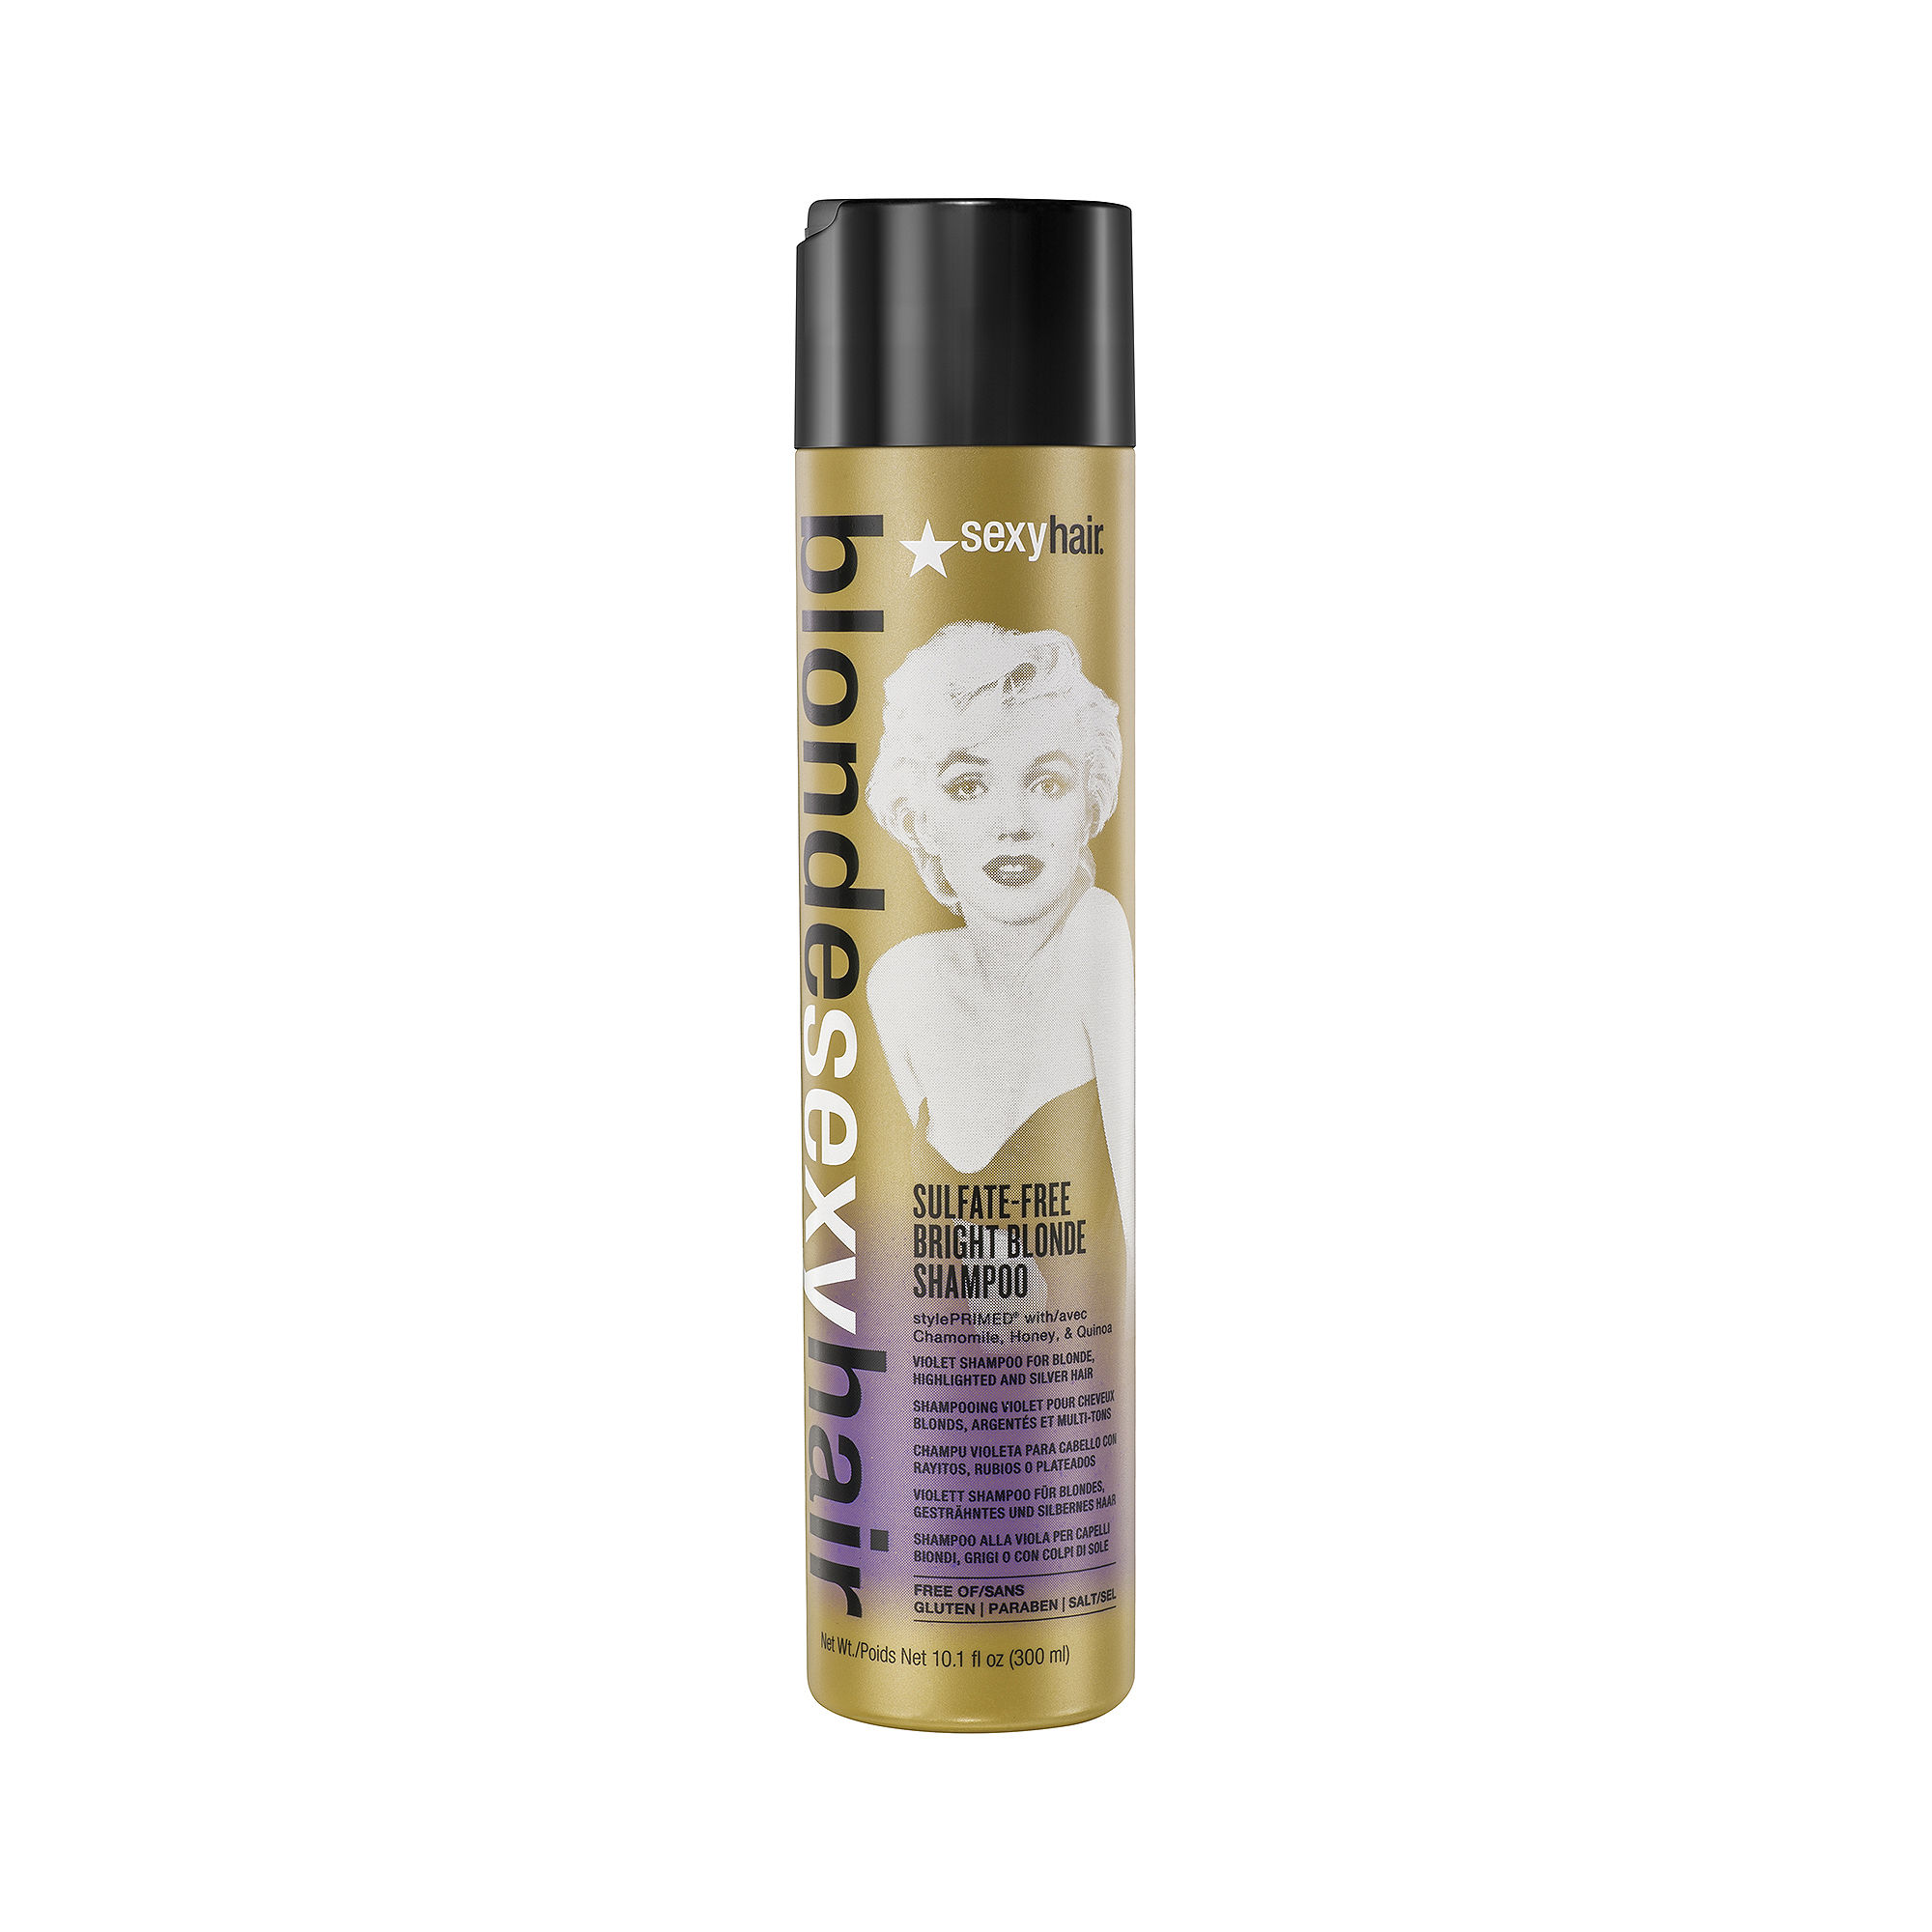 Blonde Sexy Hair Sulfate-Free Bright Blonde Shampoo - 10.1 oz